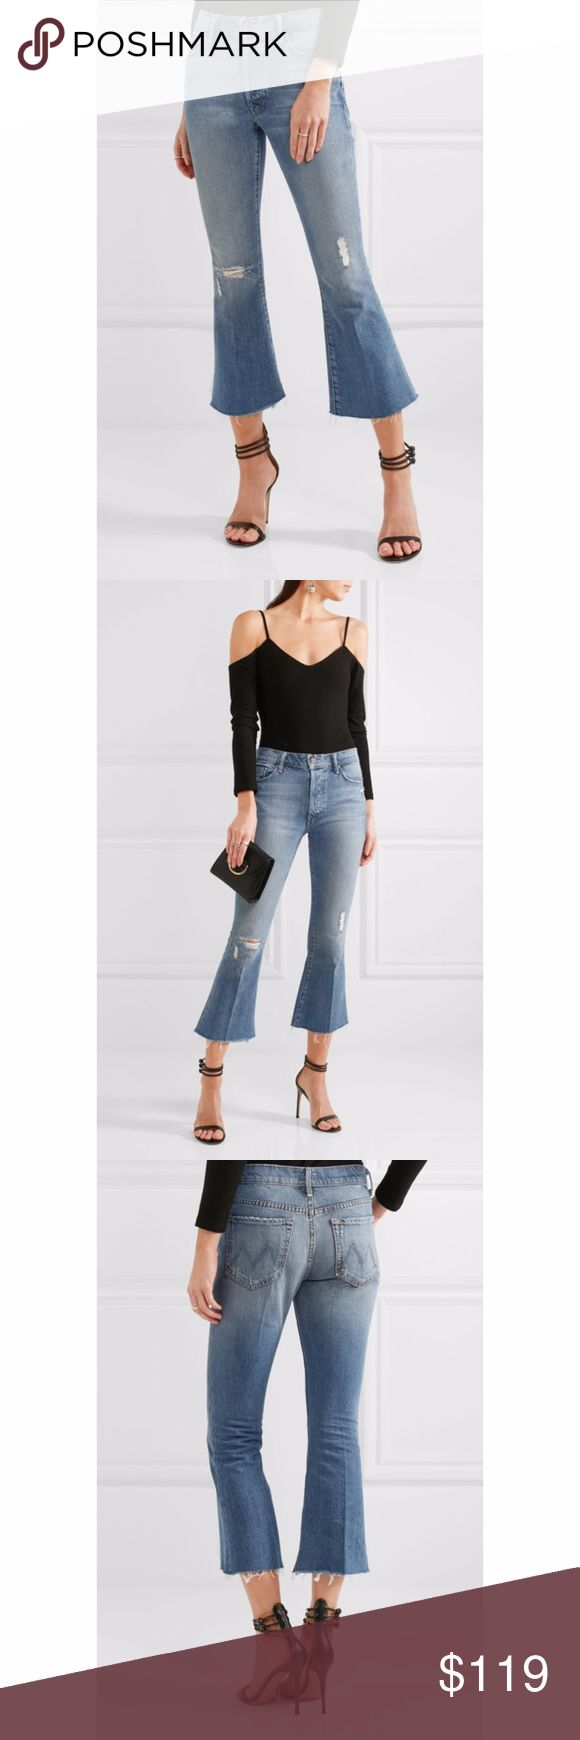 """New Mother the Nomad Crop Fray Jeans Mother the Nomad Crop Fray Womens Cropped Jeans - Twice as Nice   Made in USA    60% Cotton / 40% Lyocell  New with tags.    MEASUREMENTS (Based on Size 28) Waist:  16"""" flat across Rise:  9"""" Inseam: 23""""  All items I sell are 100% authentic! Buy with Confidence.  246022 245922 MOTHER Jeans Skinny"""